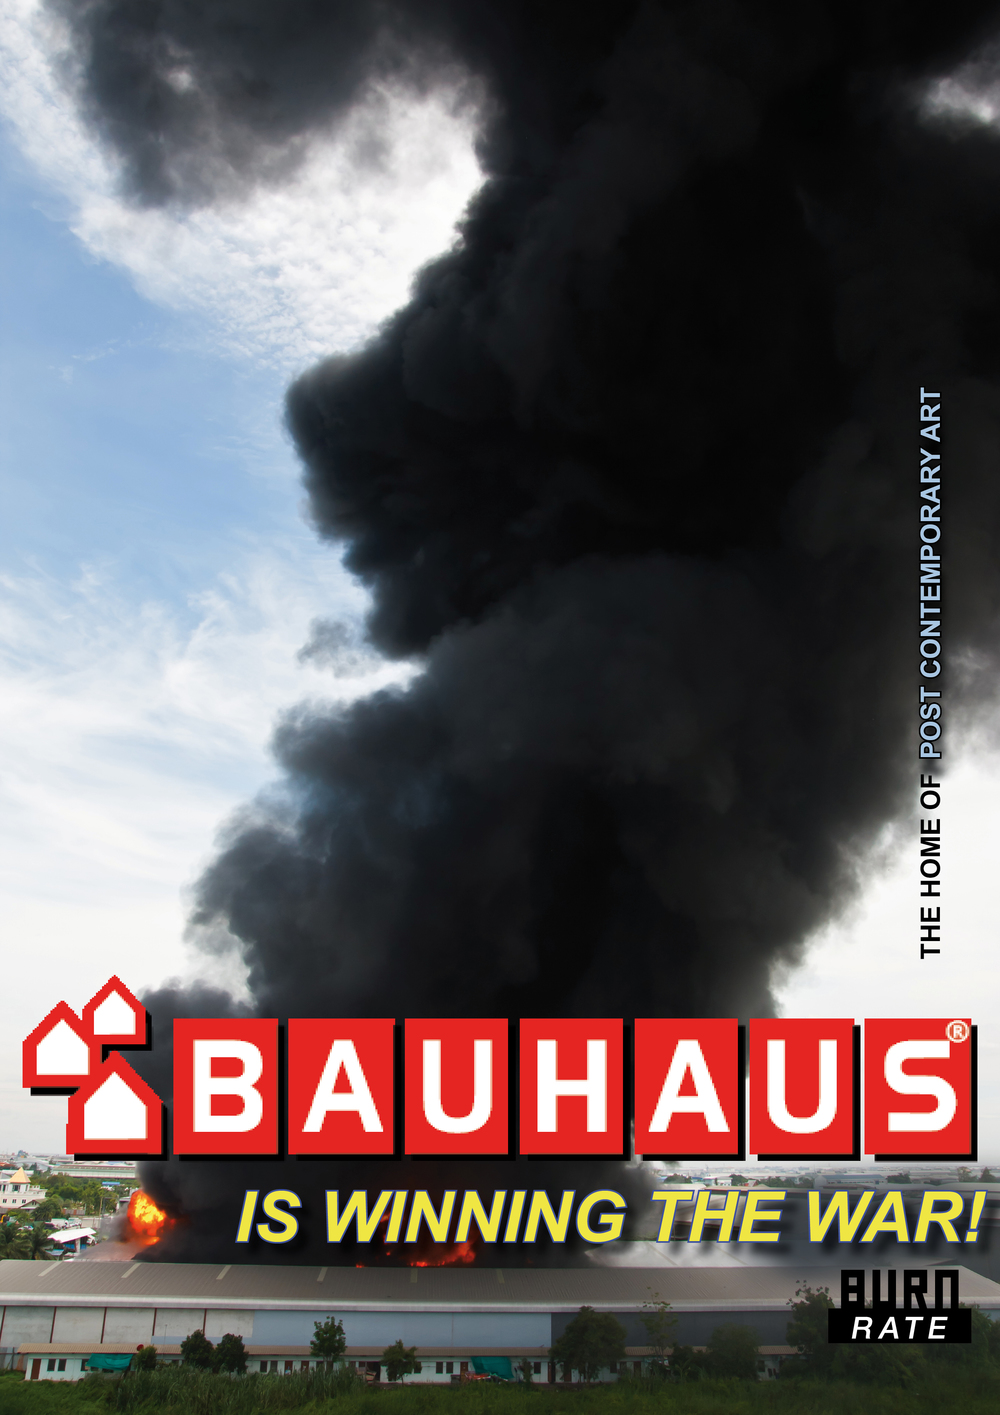 Bauhaus is winning the war 1, Digital Print on Fabric, 2015, Size variabel.jpg